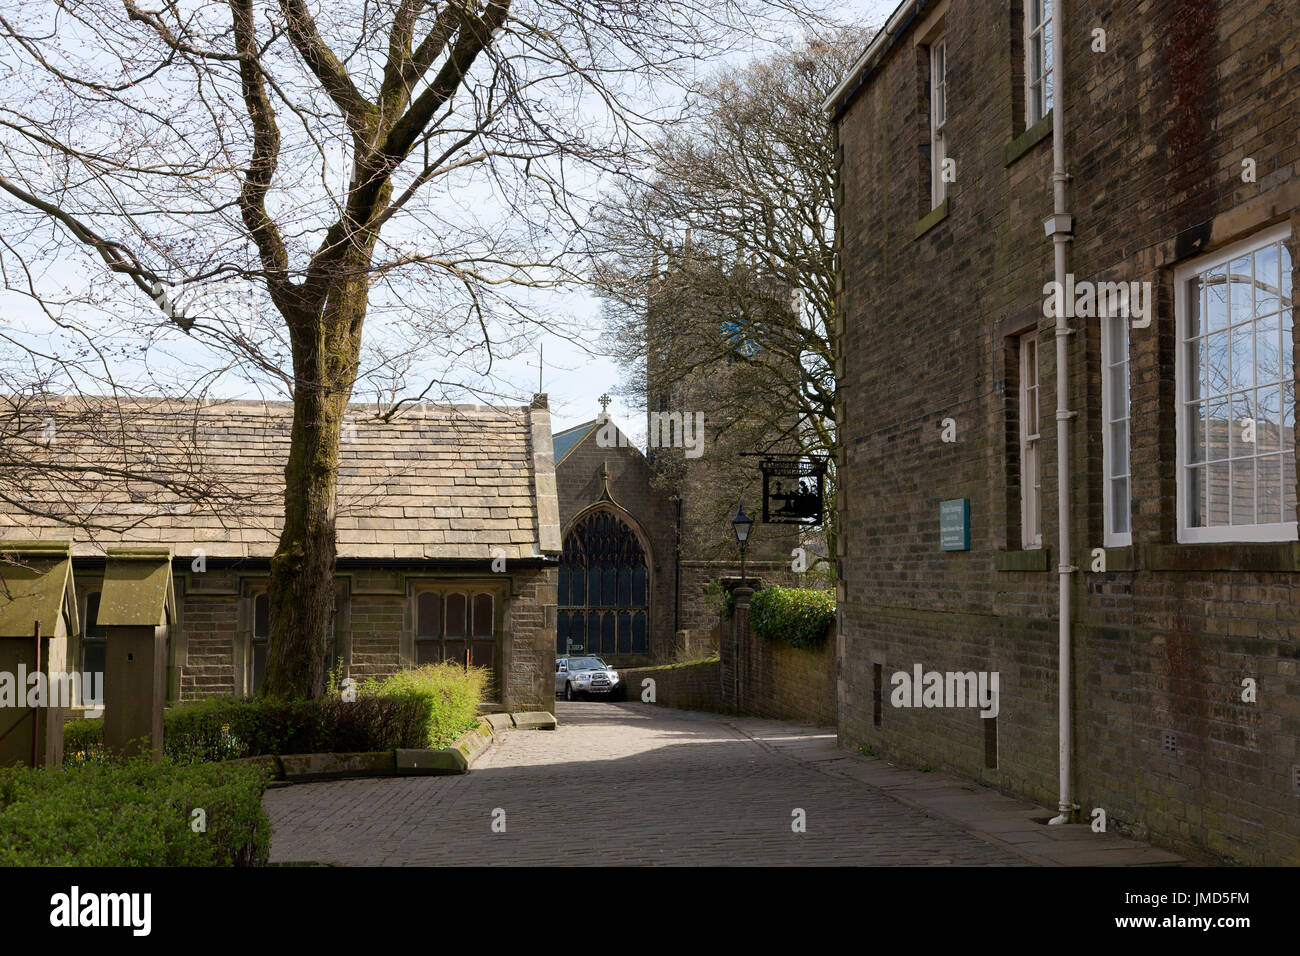 Brontë Parsonage, church and old school house, Haworth, West Yorkshire - Stock Image